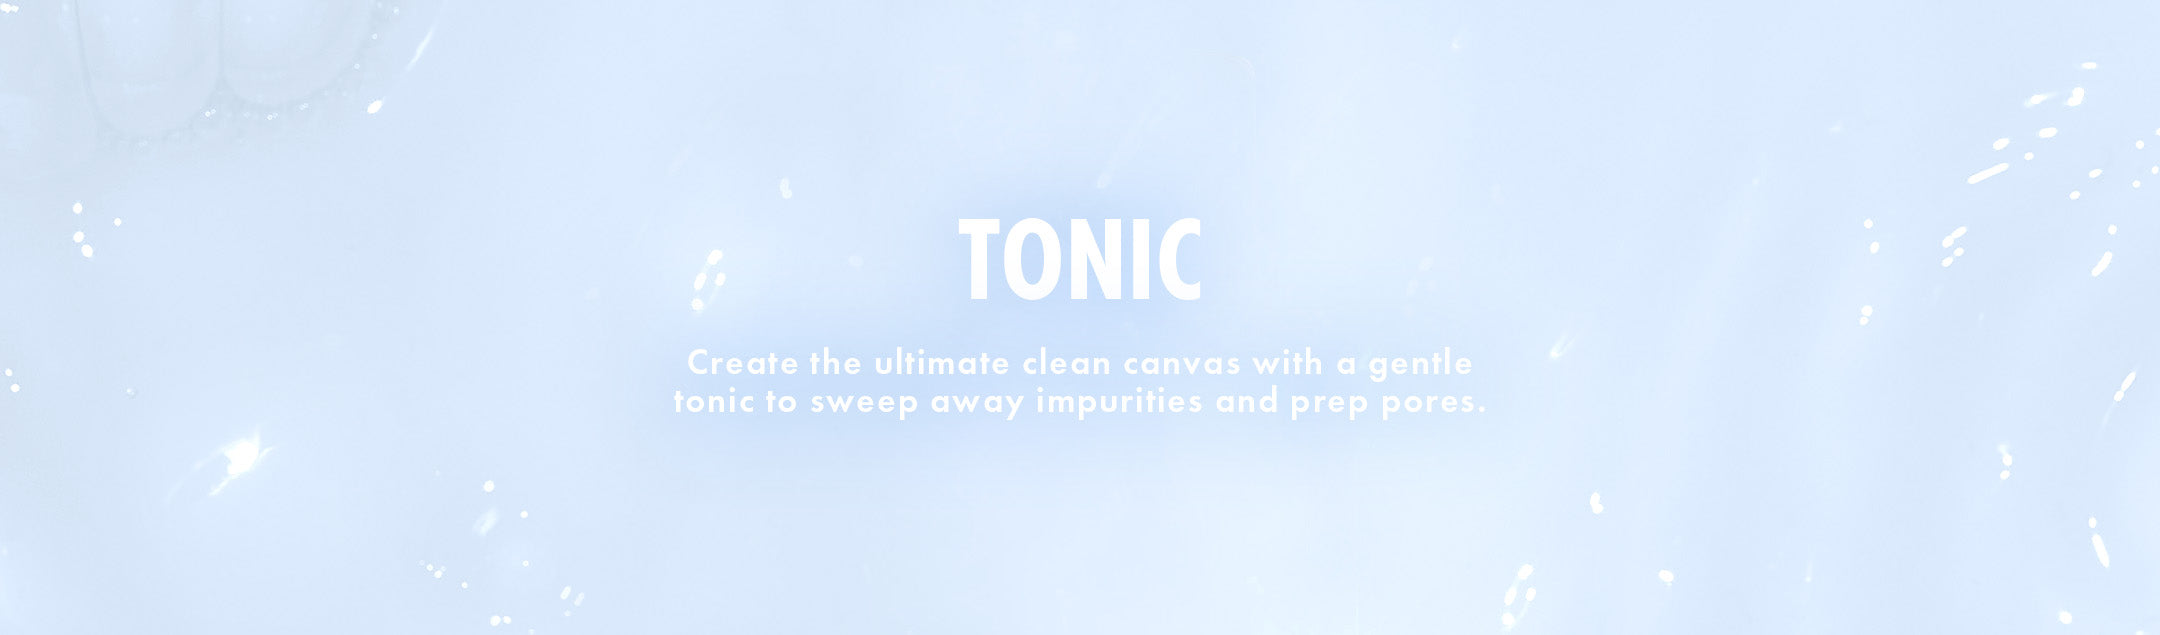 Tonic: Create the ultimate clean canvas with a gentle tonic to sweep away impurities and prep pores.